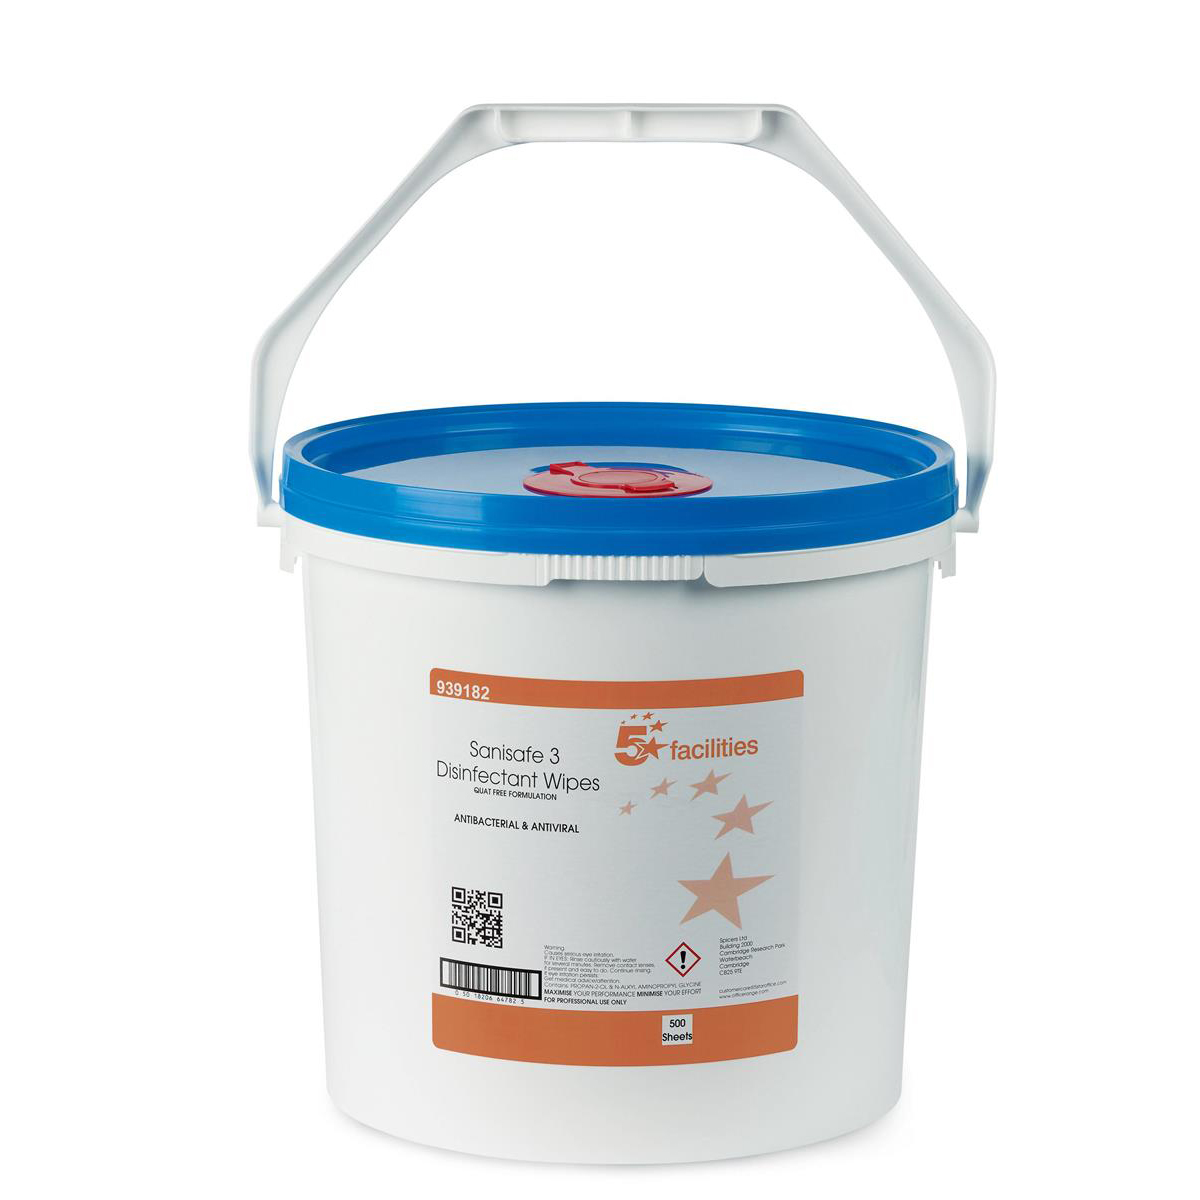 Cleaning Chemicals 5 Star Facilities Disinfectant Wipes Anti-bacterial PHMB-free BPR Low-residue 200x230mm 500 Wipes